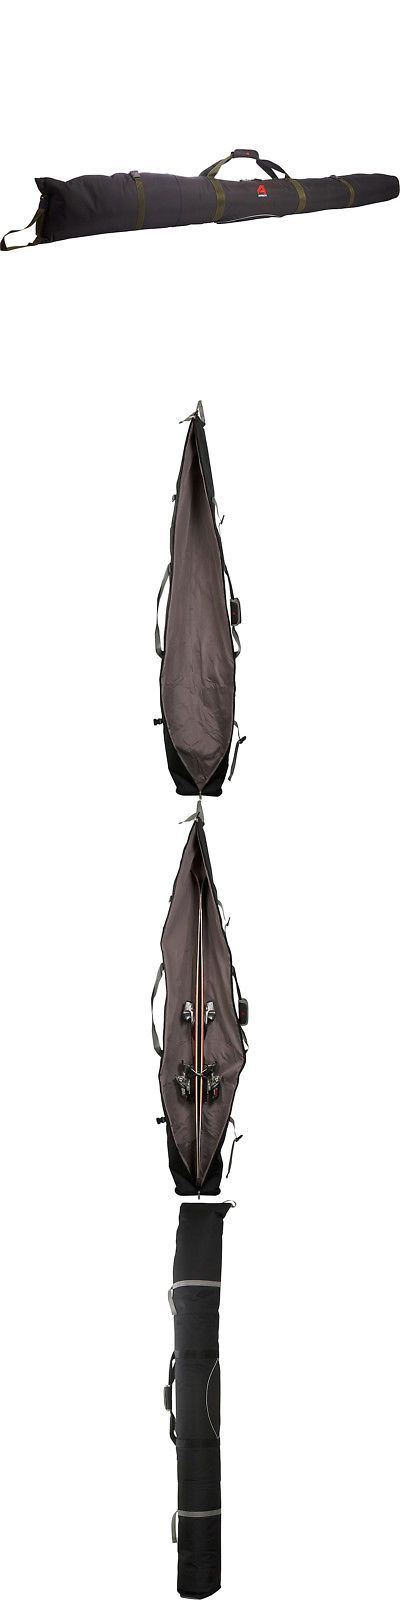 Bags and Backpacks 21229: Athalon Single Ski Bag - Padded - 180Cm 3 Colors Ski And Snowboard Bag New -> BUY IT NOW ONLY: $128.99 on eBay!